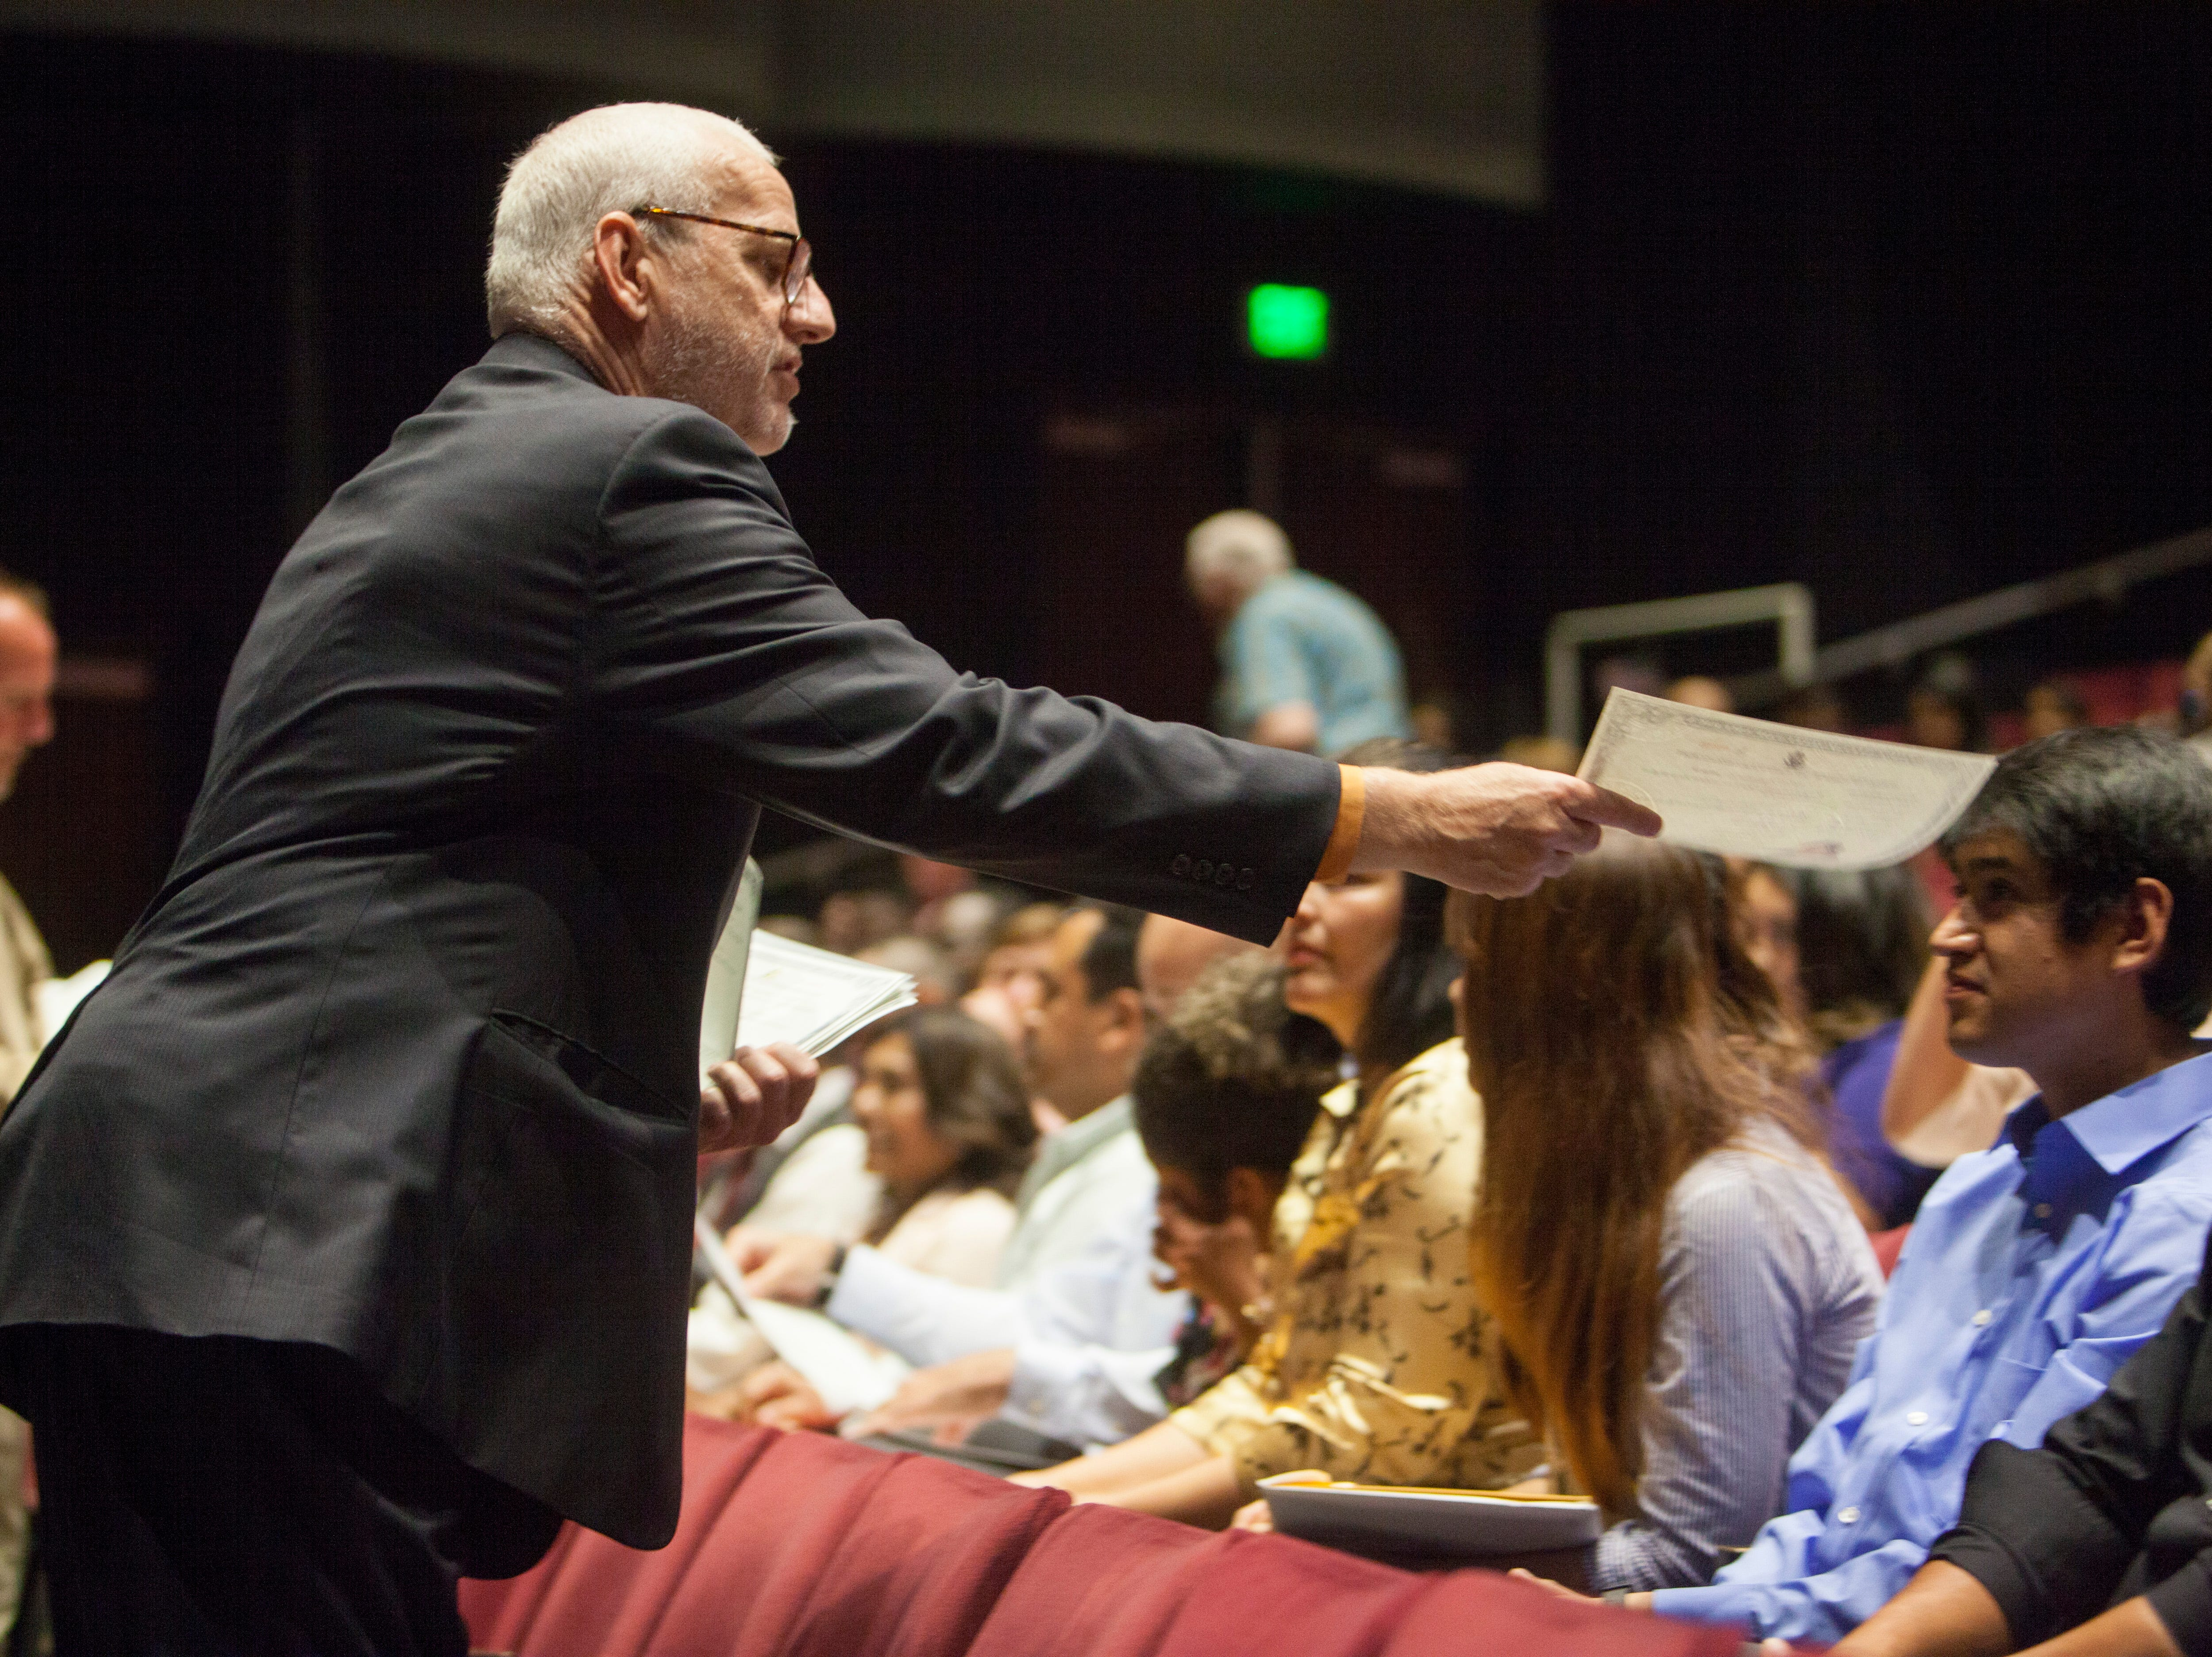 People gather at the Cox Auditorium to honor new U.S. citizens at a naturalization ceremony Tuesday, May 14, 2019.